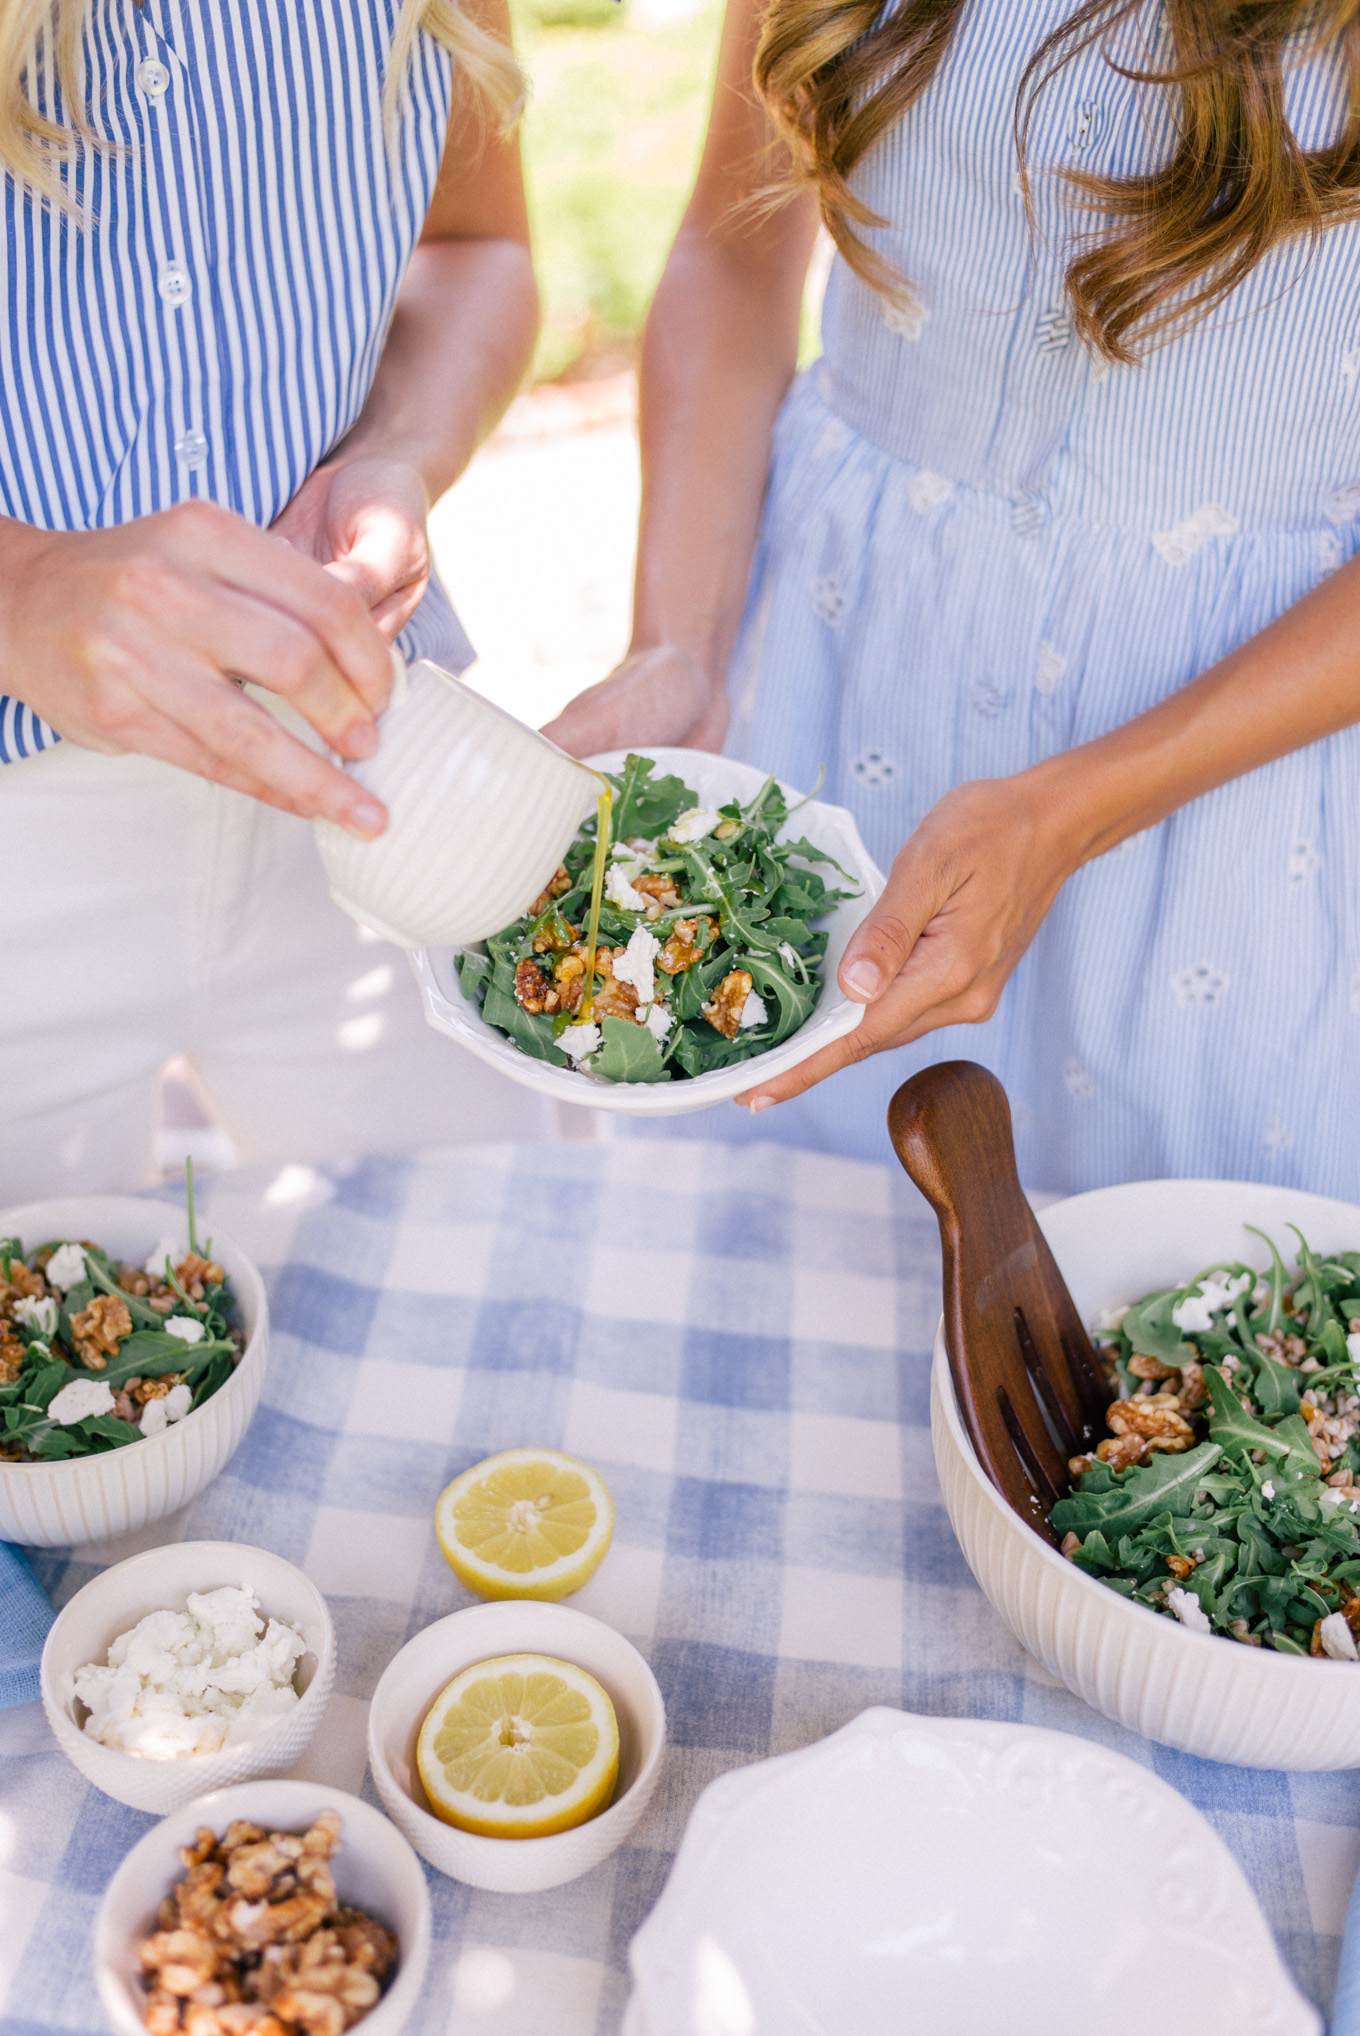 gmg-three-easy-healthy-summer-salads-1000471